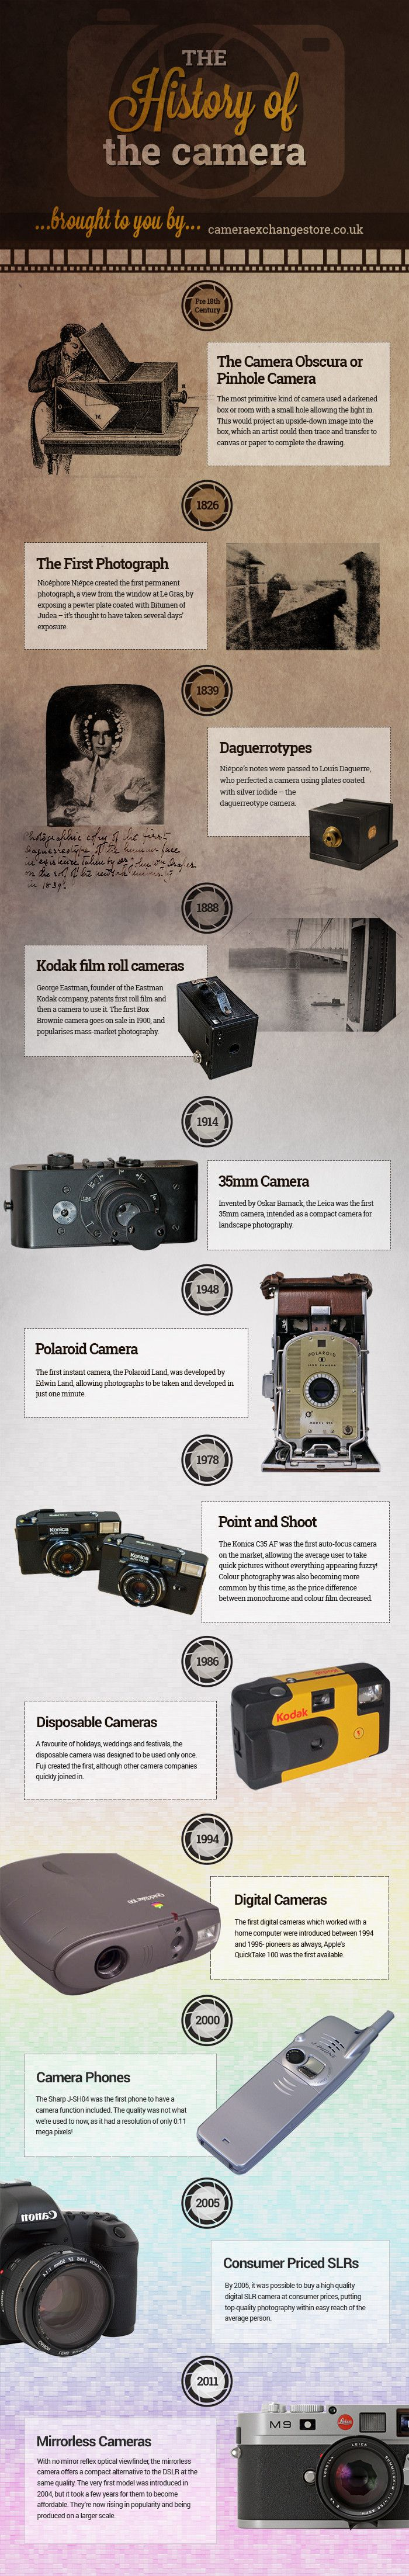 The History of the Camera #infographic #Camera #History